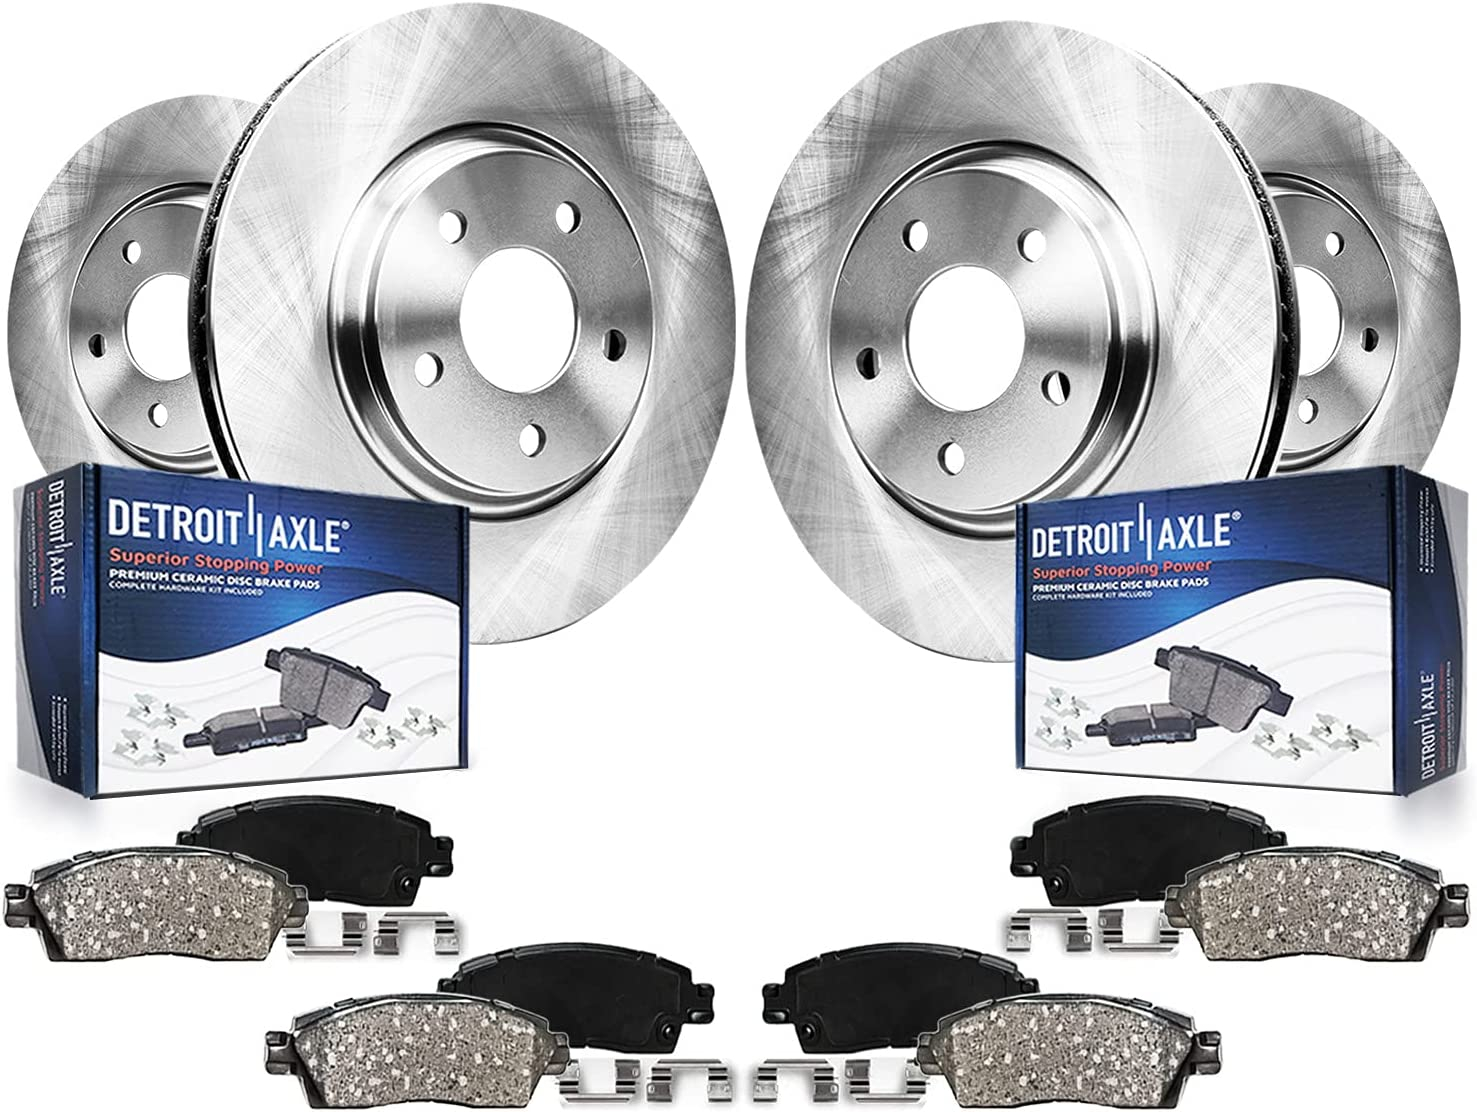 Detroit Axle Max 48% OFF - Front and Rear Disc w Pads Brake Rotors 55% OFF Ceramic